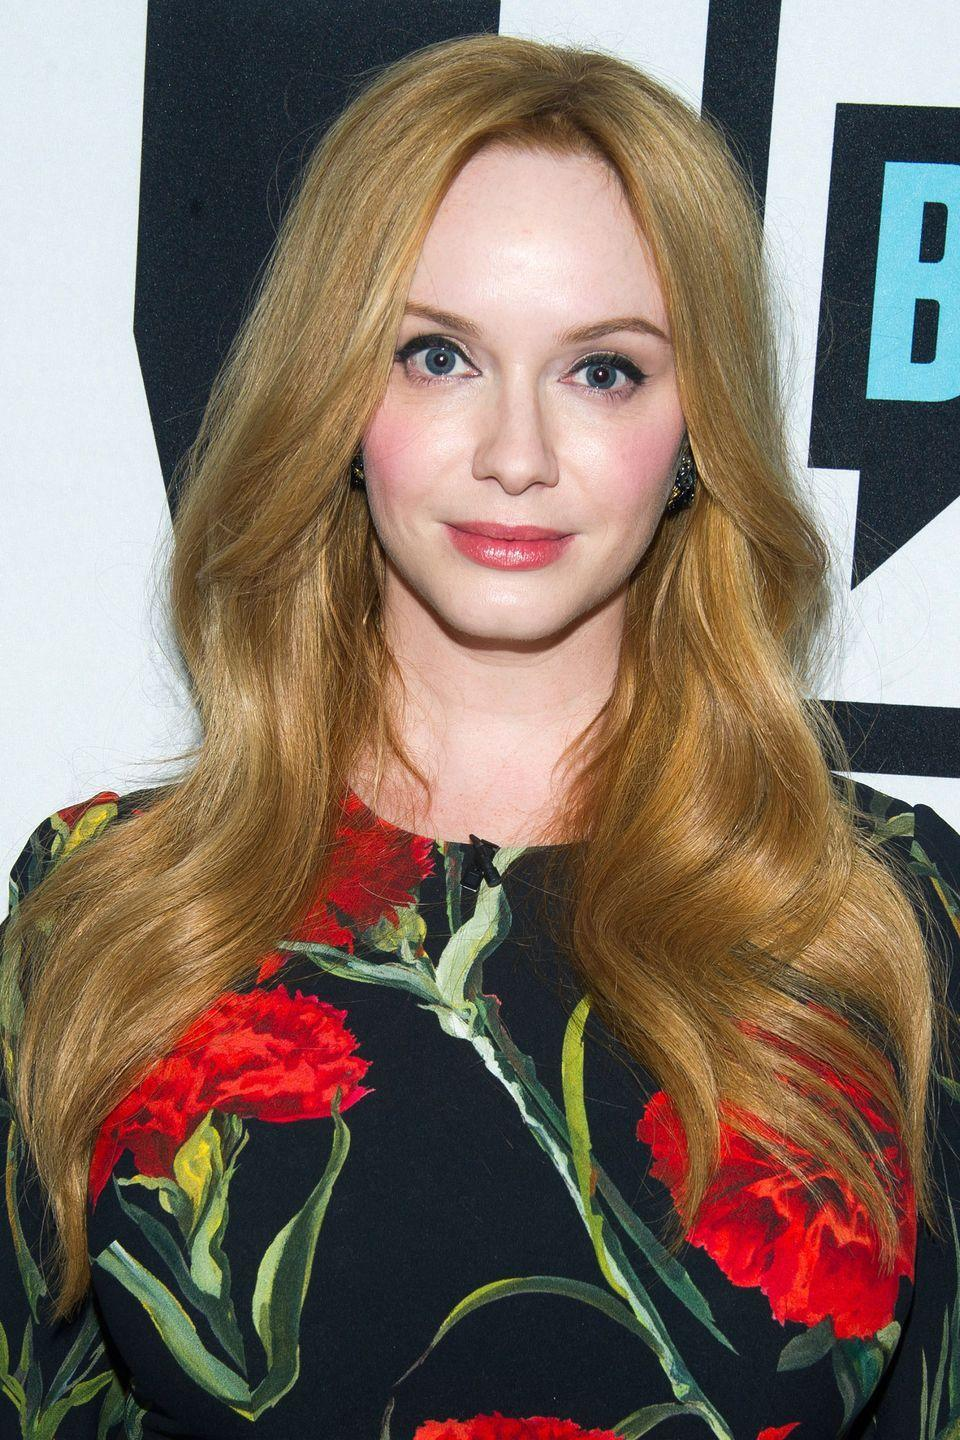 """<p>But it's when Christina went strawberry blonde for a <a href=""""https://www.amazon.com/Clairol-Natural-Medium-Brown-Permanent/dp/B001E95FUQ/ref=sr_1_3_a_it?tag=syn-yahoo-20&ascsubtag=%5Bartid%7C10050.g.4942%5Bsrc%7Cyahoo-us"""" rel=""""nofollow noopener"""" target=""""_blank"""" data-ylk=""""slk:Clairol Nice 'n Easy"""" class=""""link rapid-noclick-resp"""">Clairol Nice 'n Easy</a> campaign that we got a hint of what she'd look like with her natural flaxen color.</p>"""